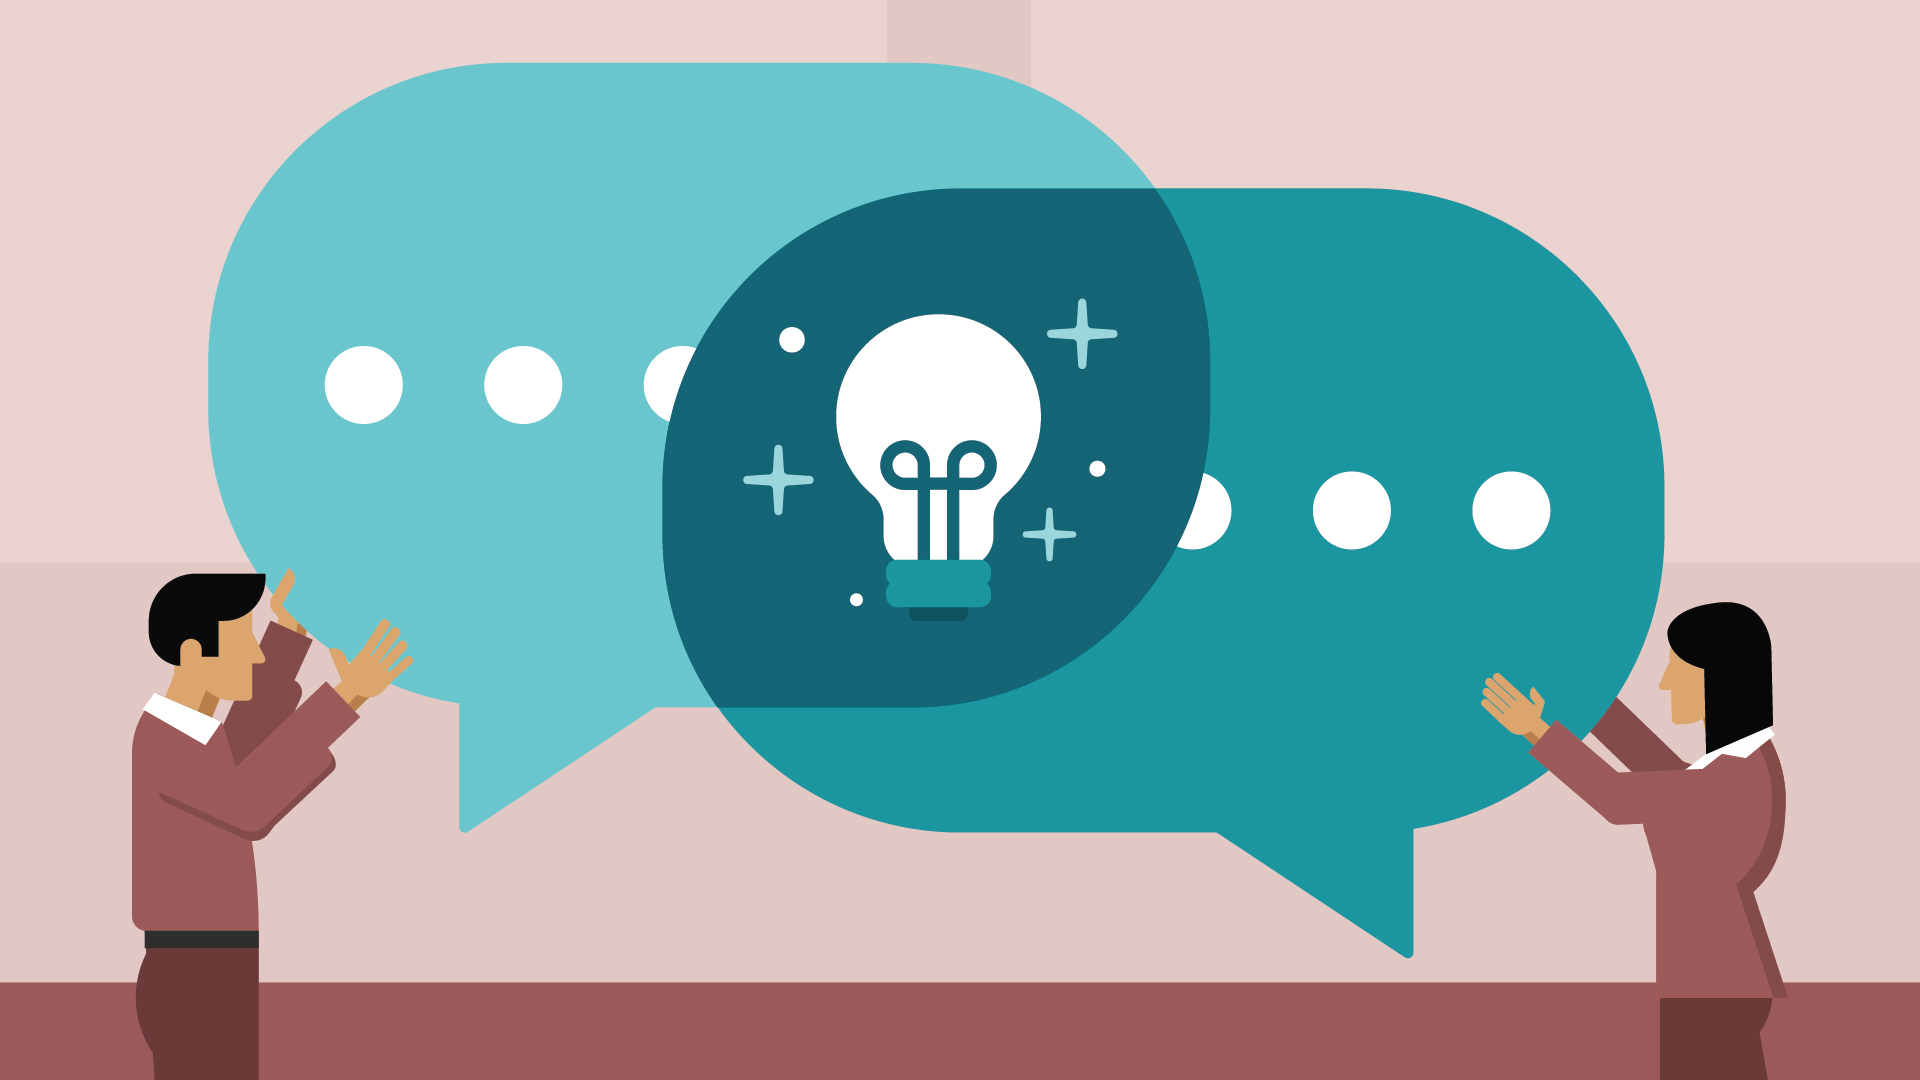 Let's Talk: How to Communicate Better at Work